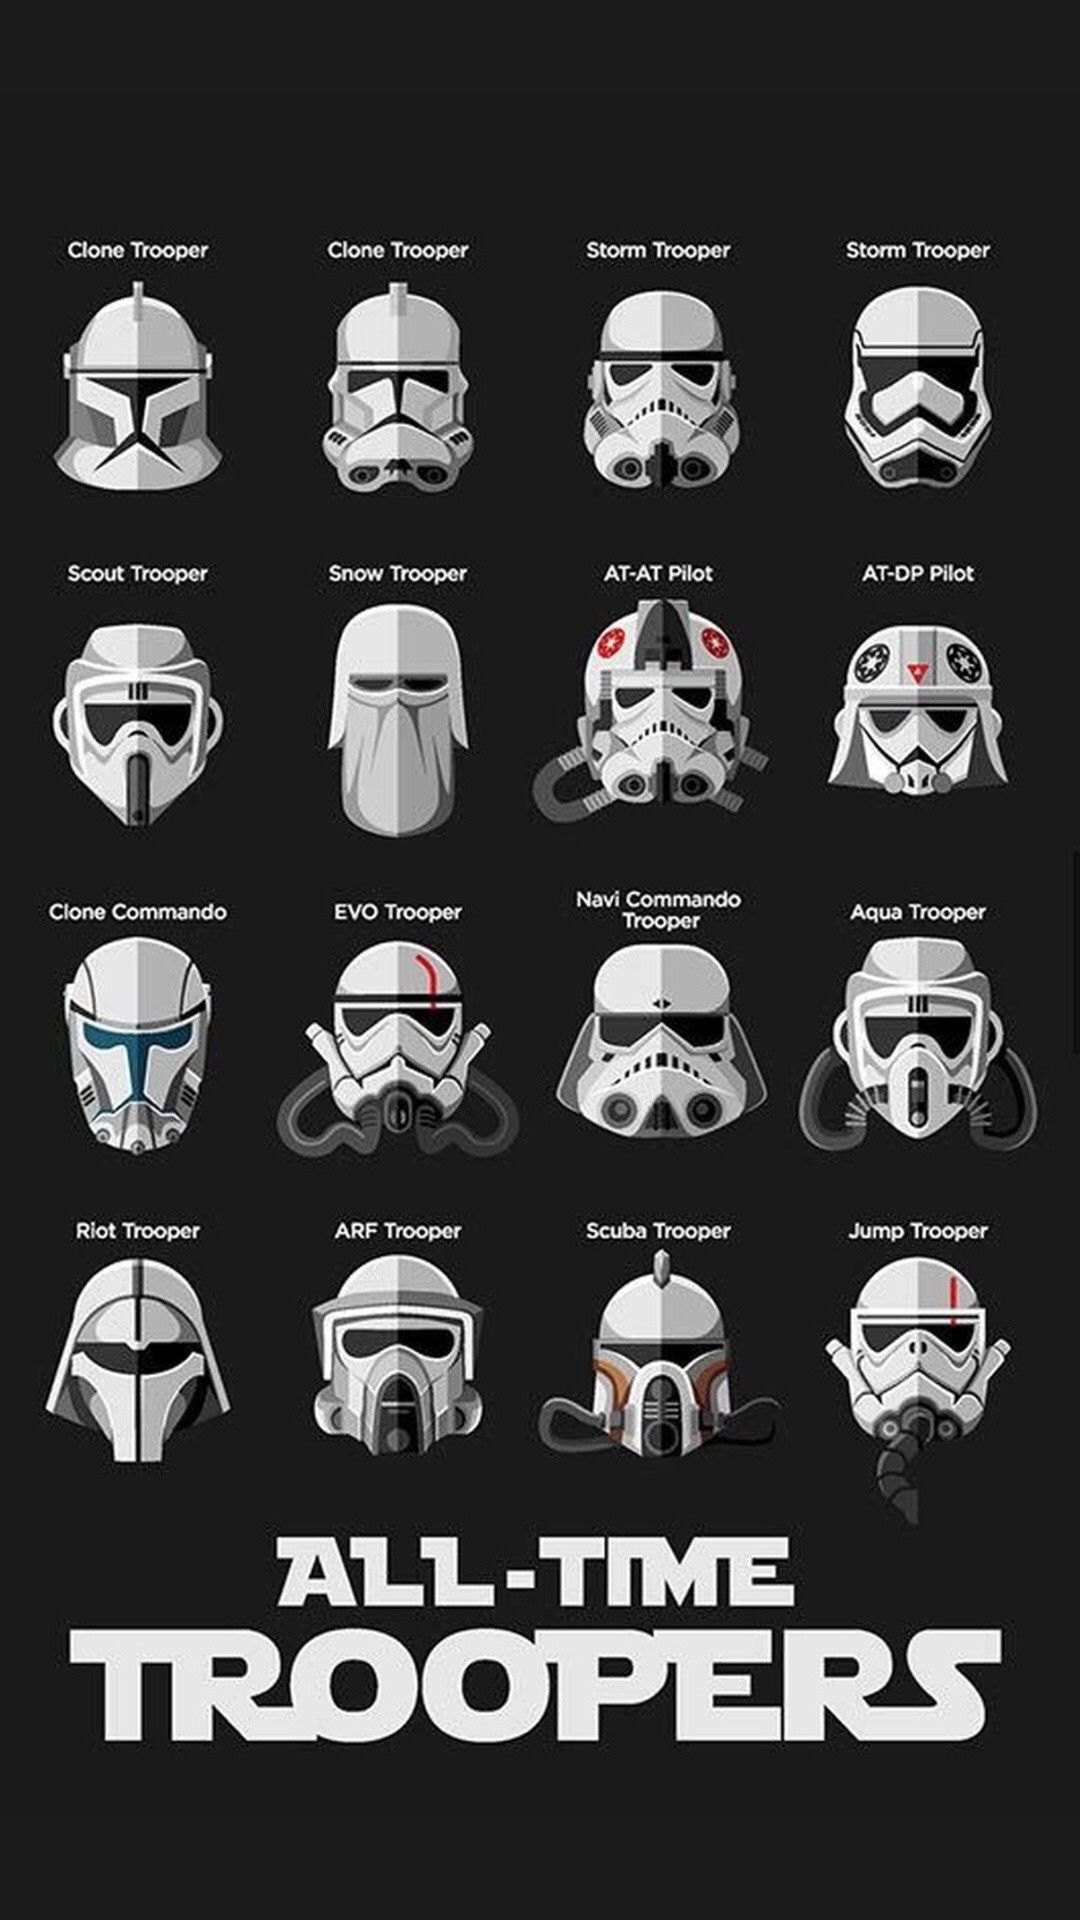 Stormtrooper Iphone Wallpapers Top Free Stormtrooper Iphone Backgrounds Wallpaperaccess